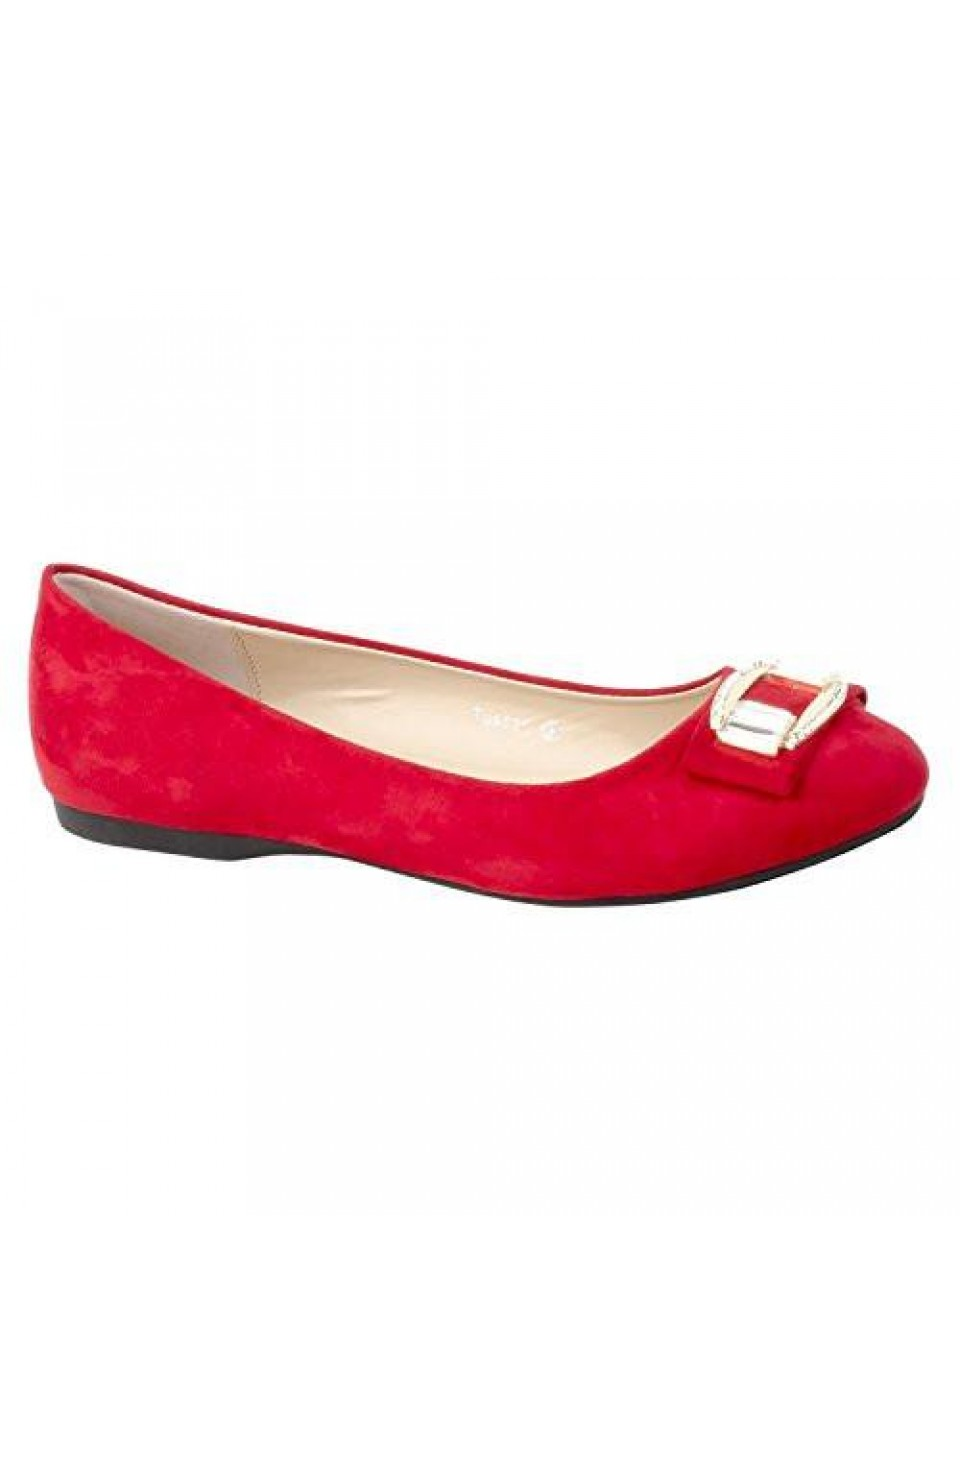 Women's Red Manmade Tuscan Pump Flat with Sparkling Toe Buckle